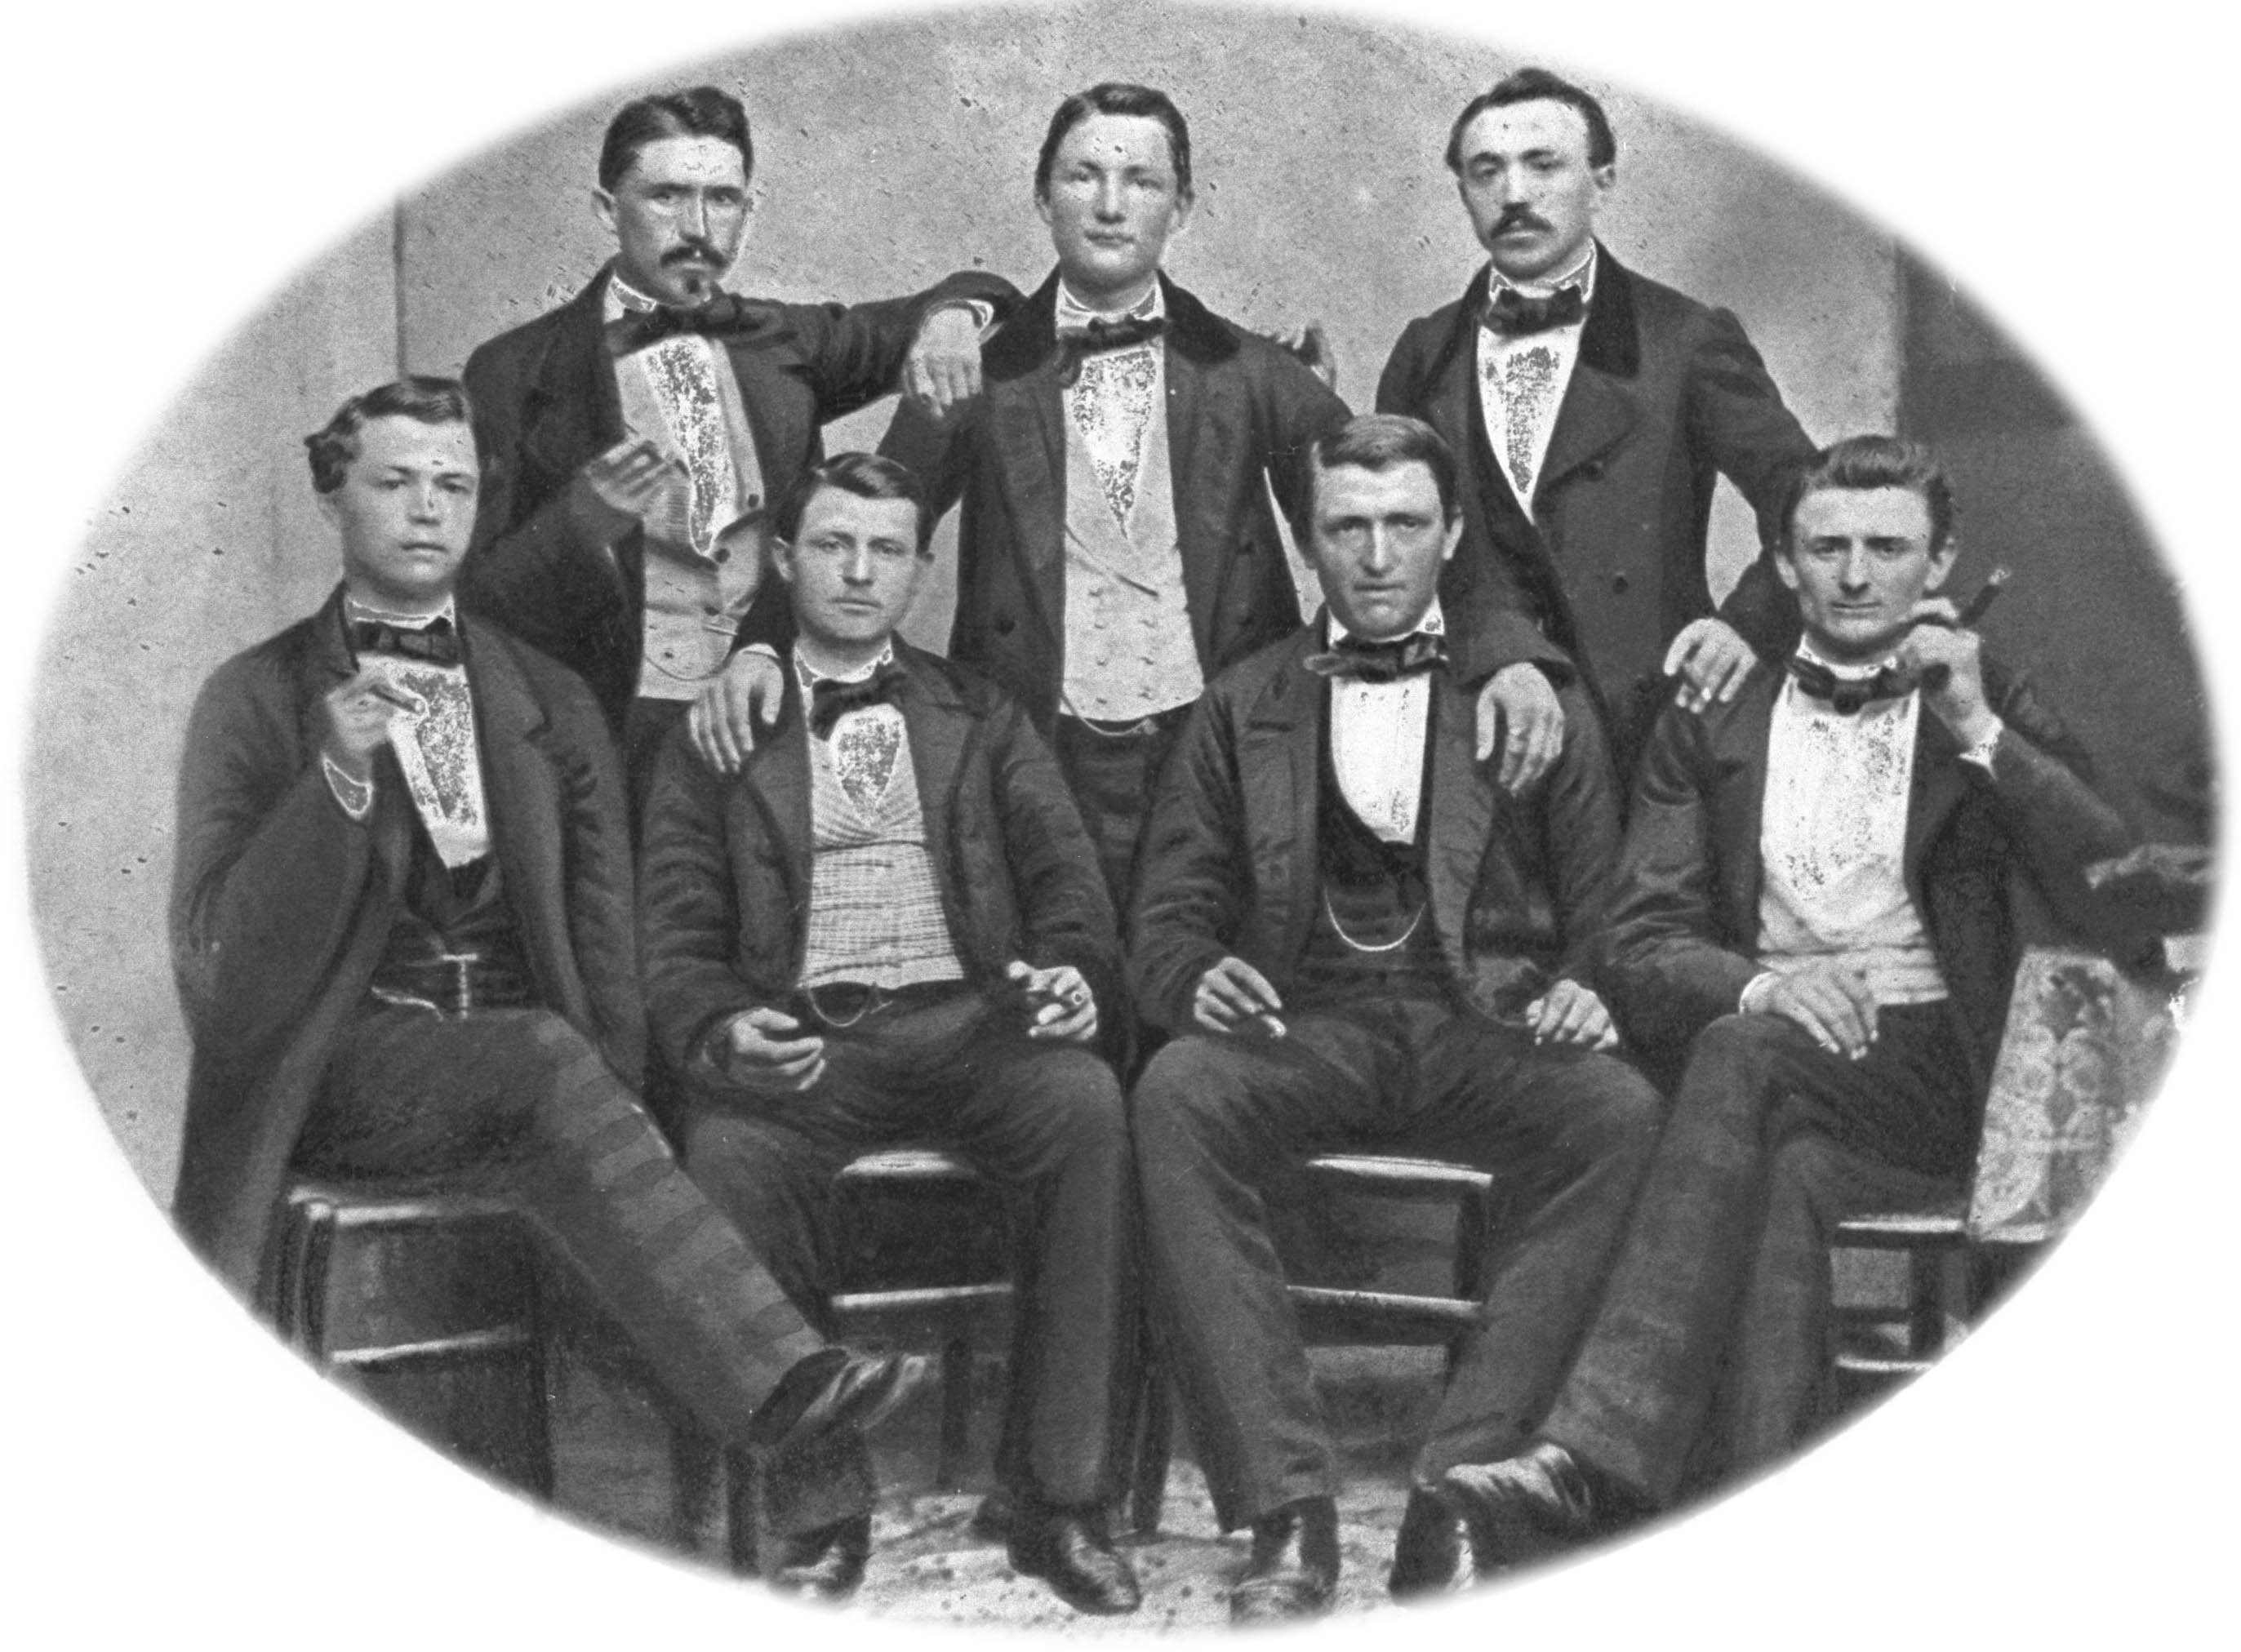 File:Mens-group 1880 hg.jpg